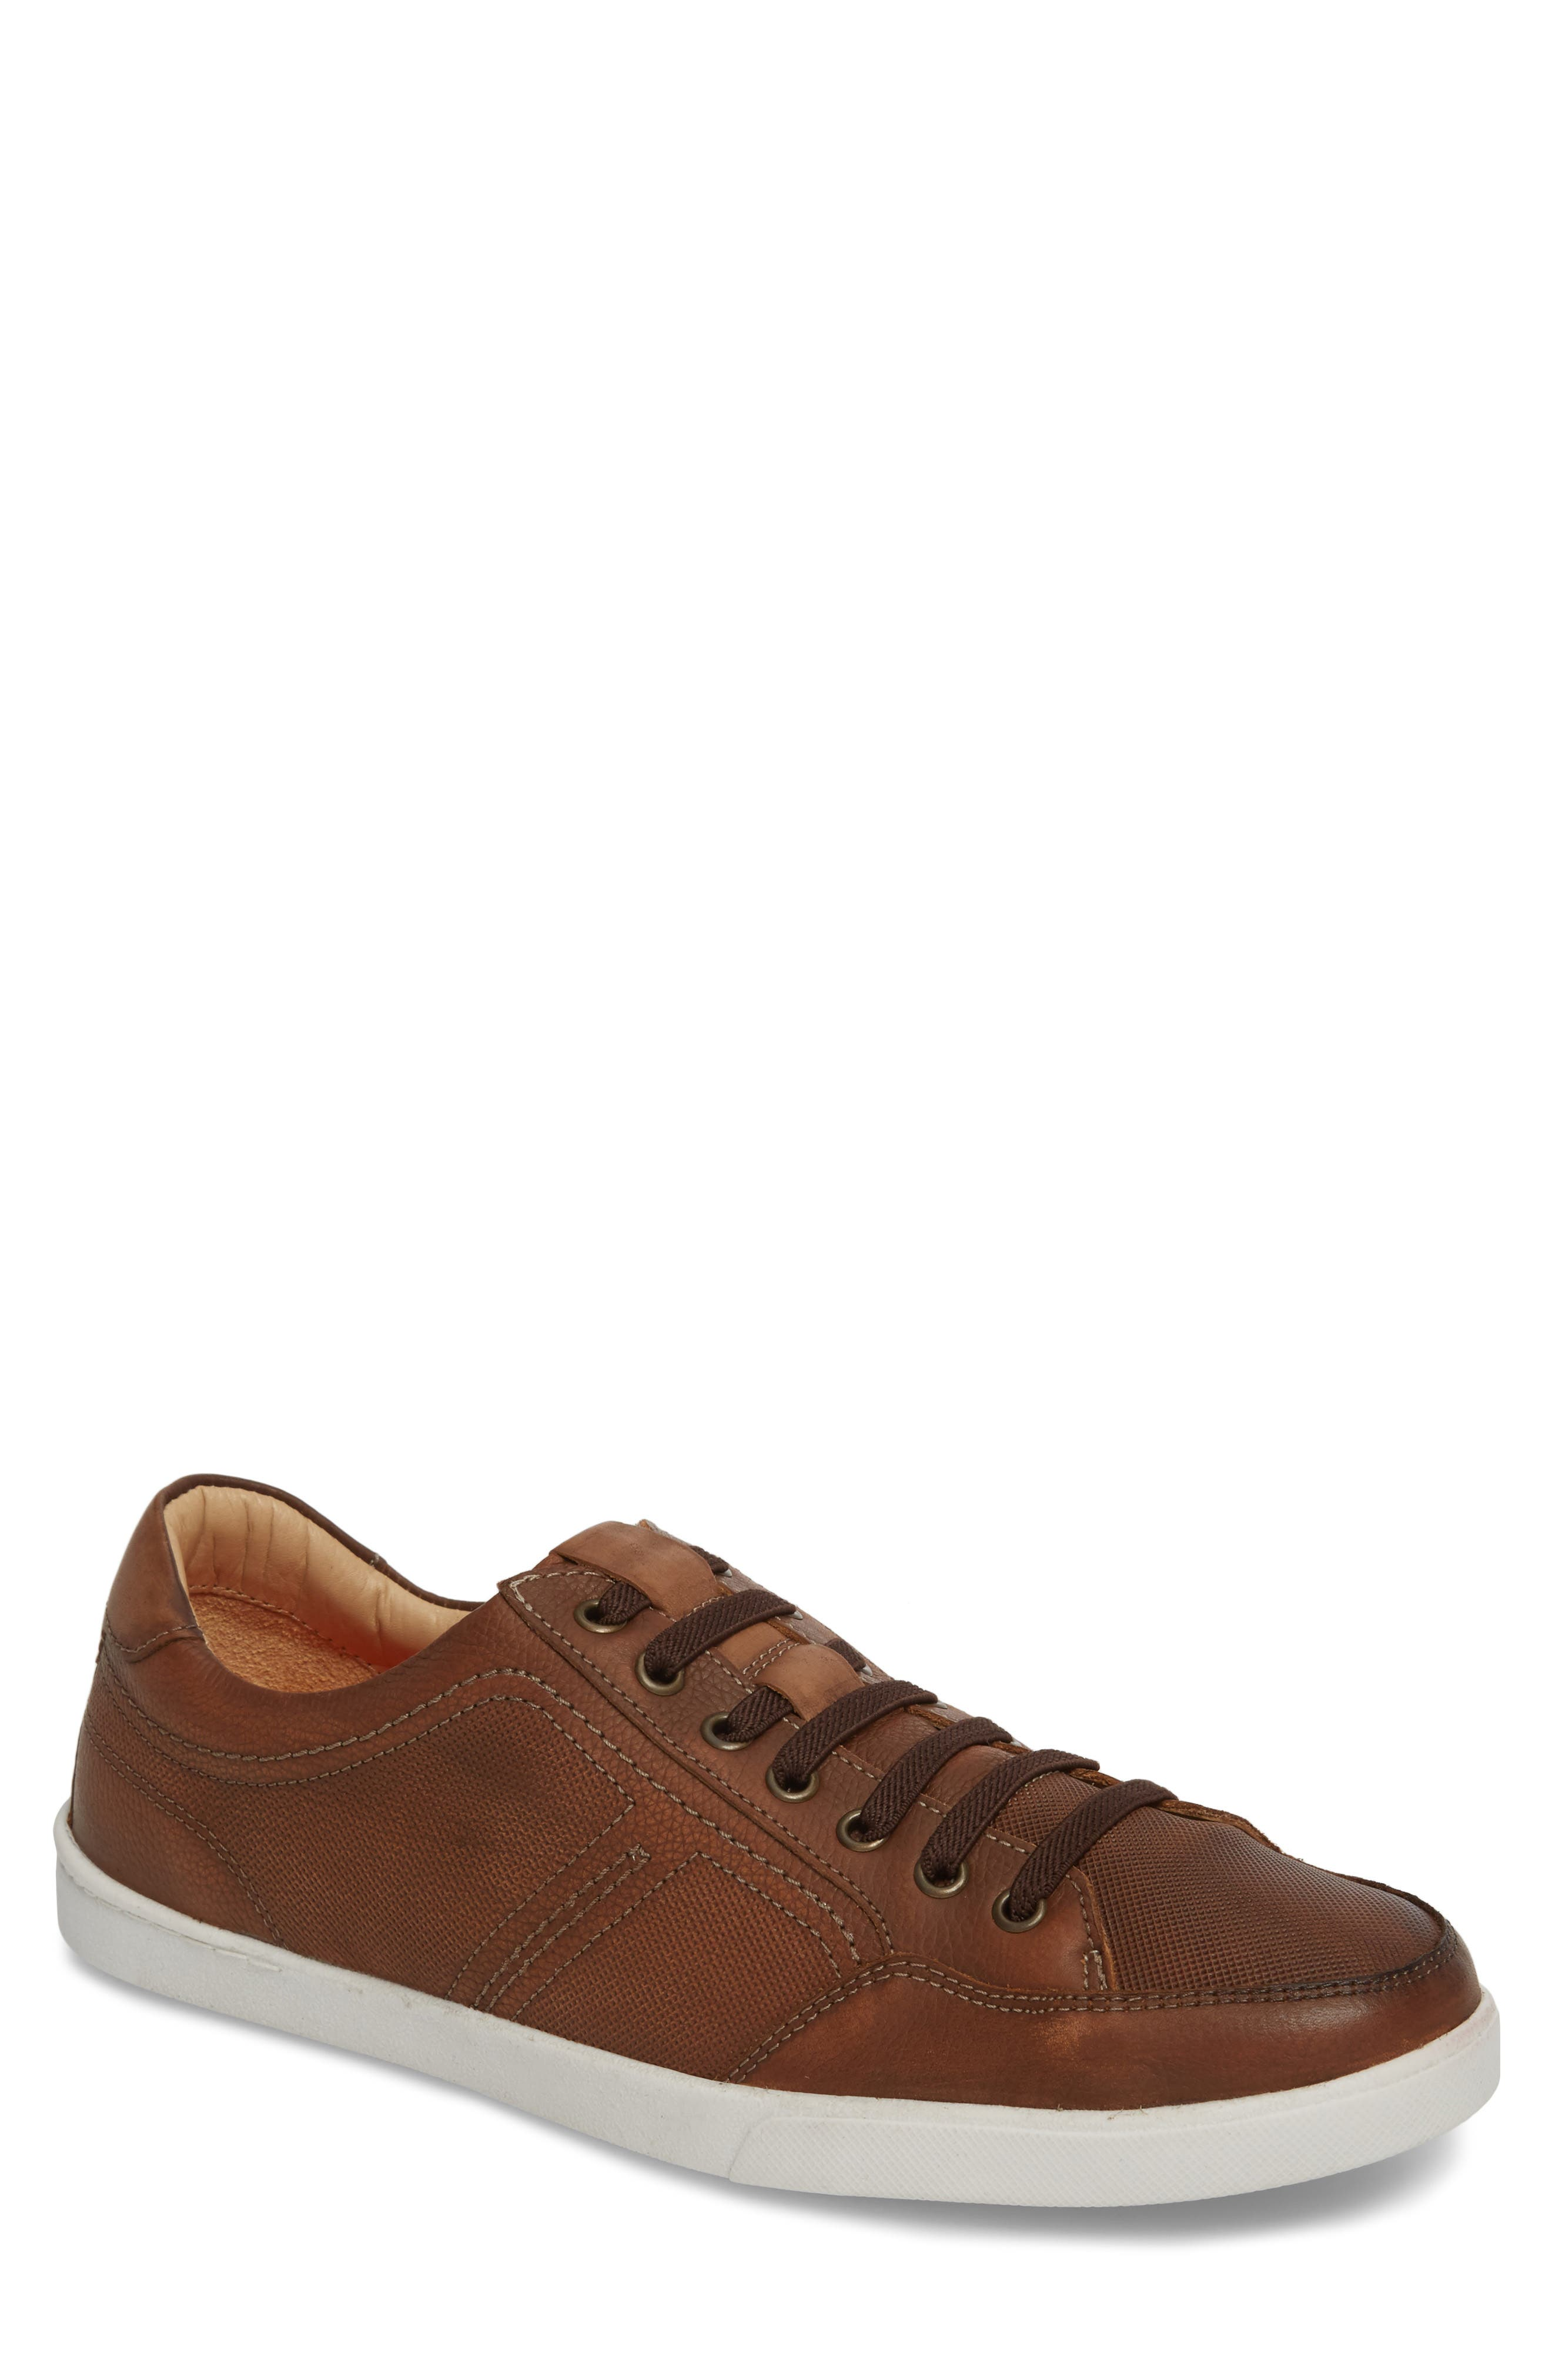 Quinton Textured Low Top Sneaker,                         Main,                         color, Tan Leather